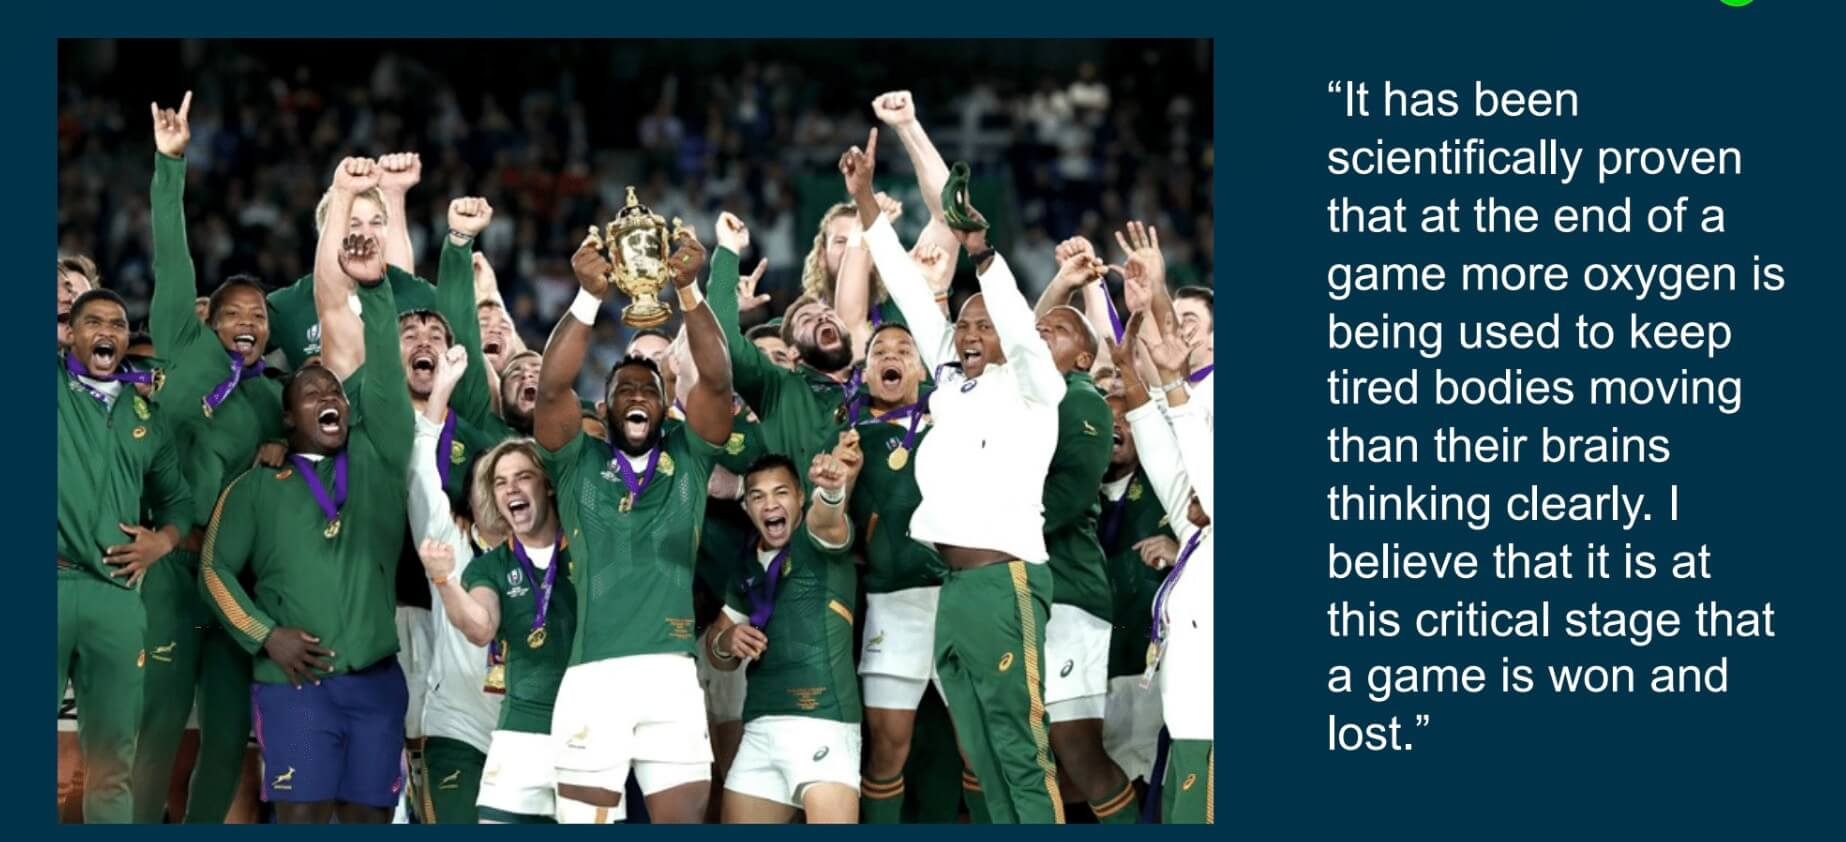 """""""It has been scientifically proven that at the end of the game more oxygen is being used to keep tired bodies moving than their brains thinking clearly. I believe that it is at this critical stage that a game is won and lost."""" - Rassie Erasmus"""